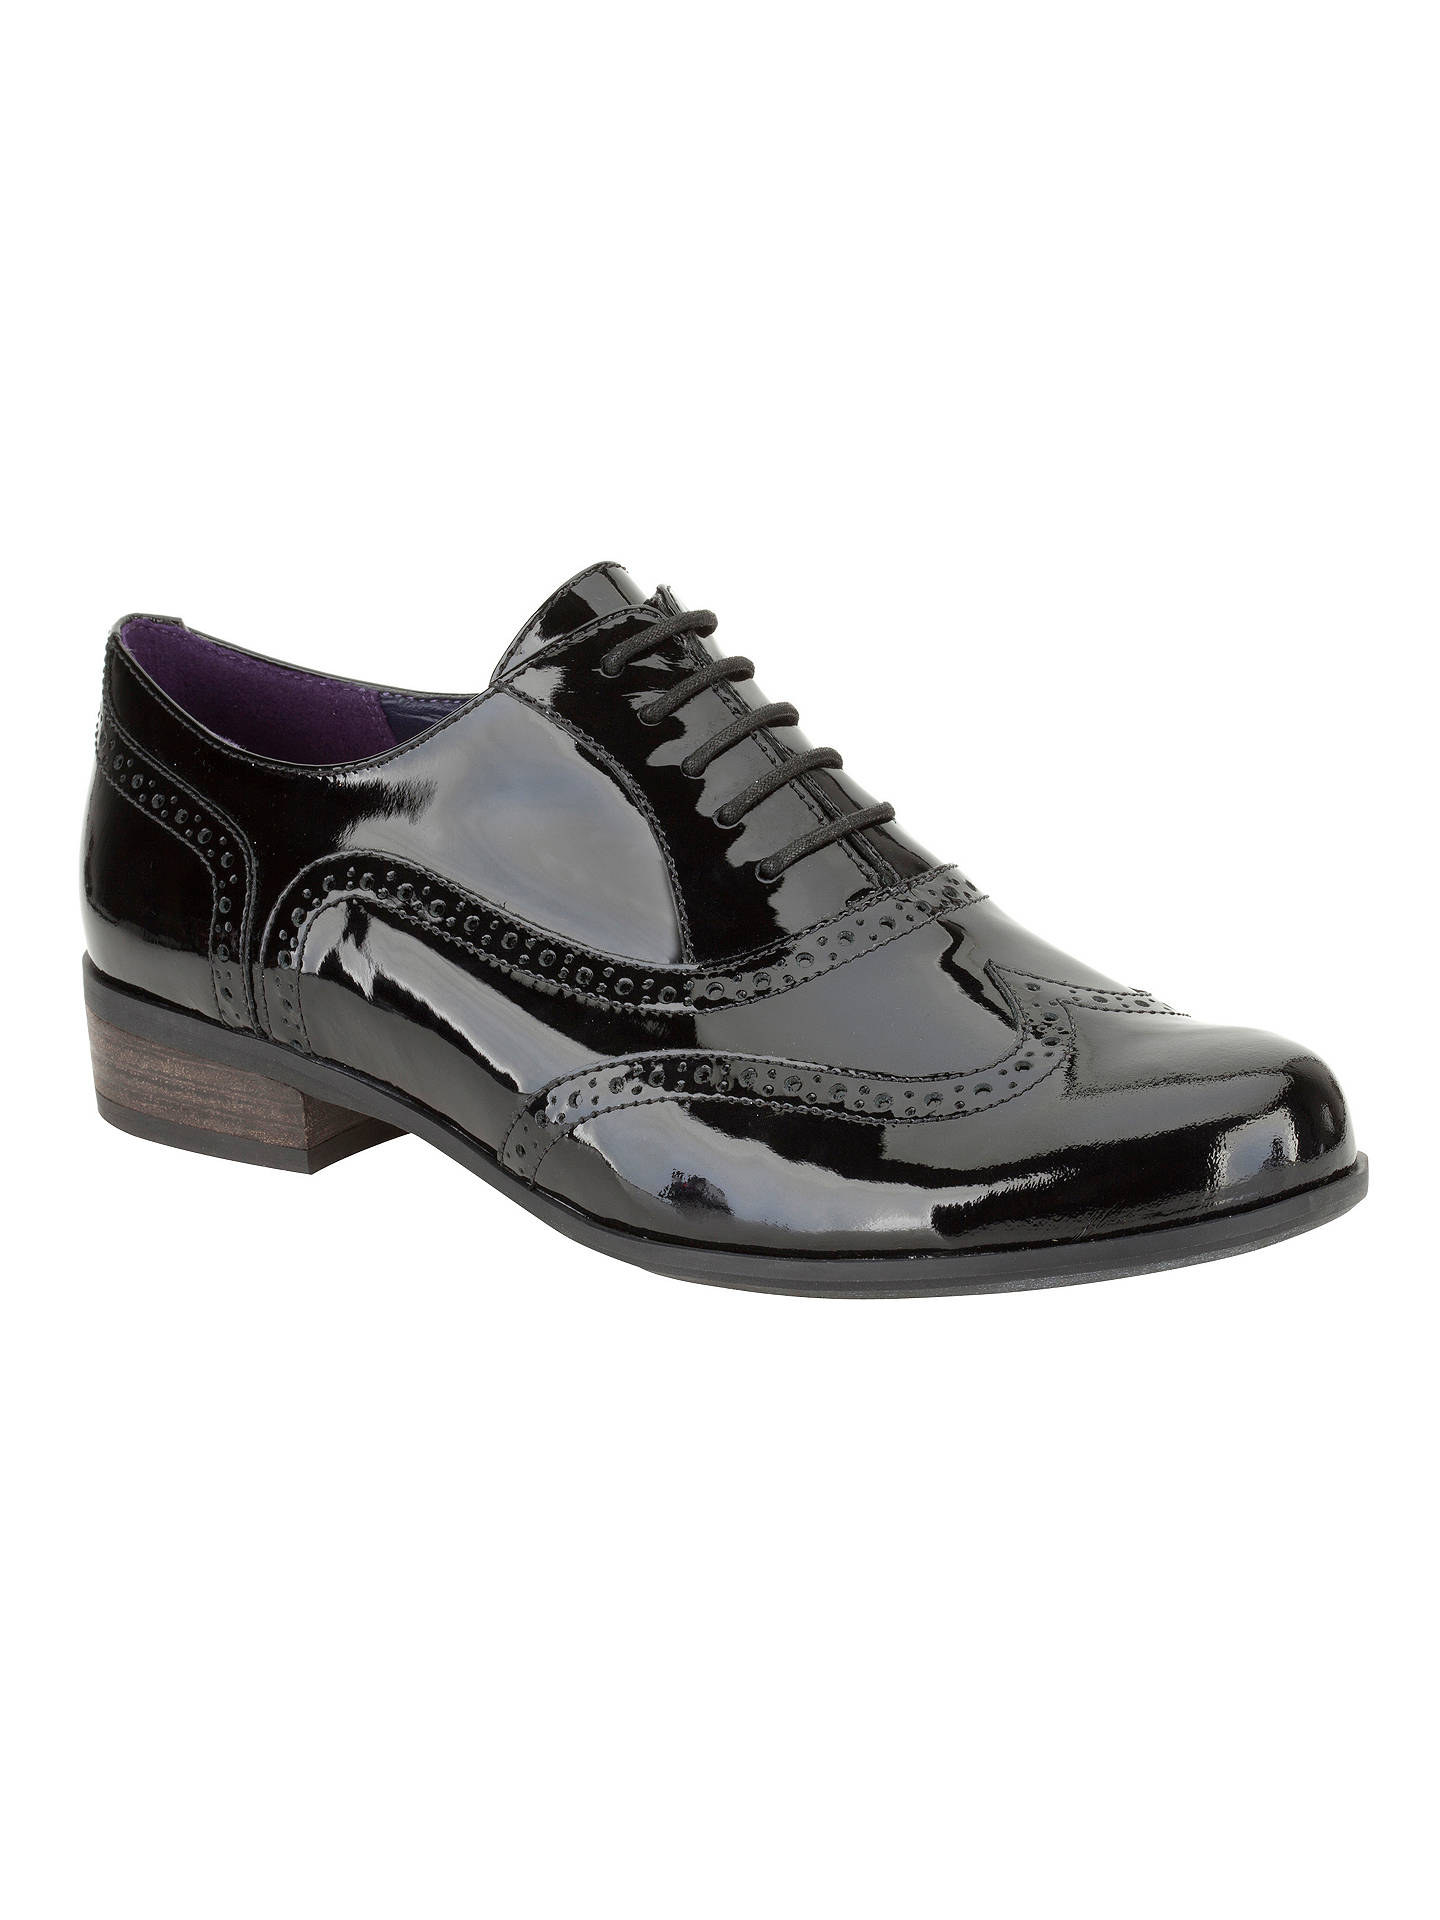 Patent Hamble Brogue John At Lewis Clarks Oak Shoes Black Leather 1aYngqwO